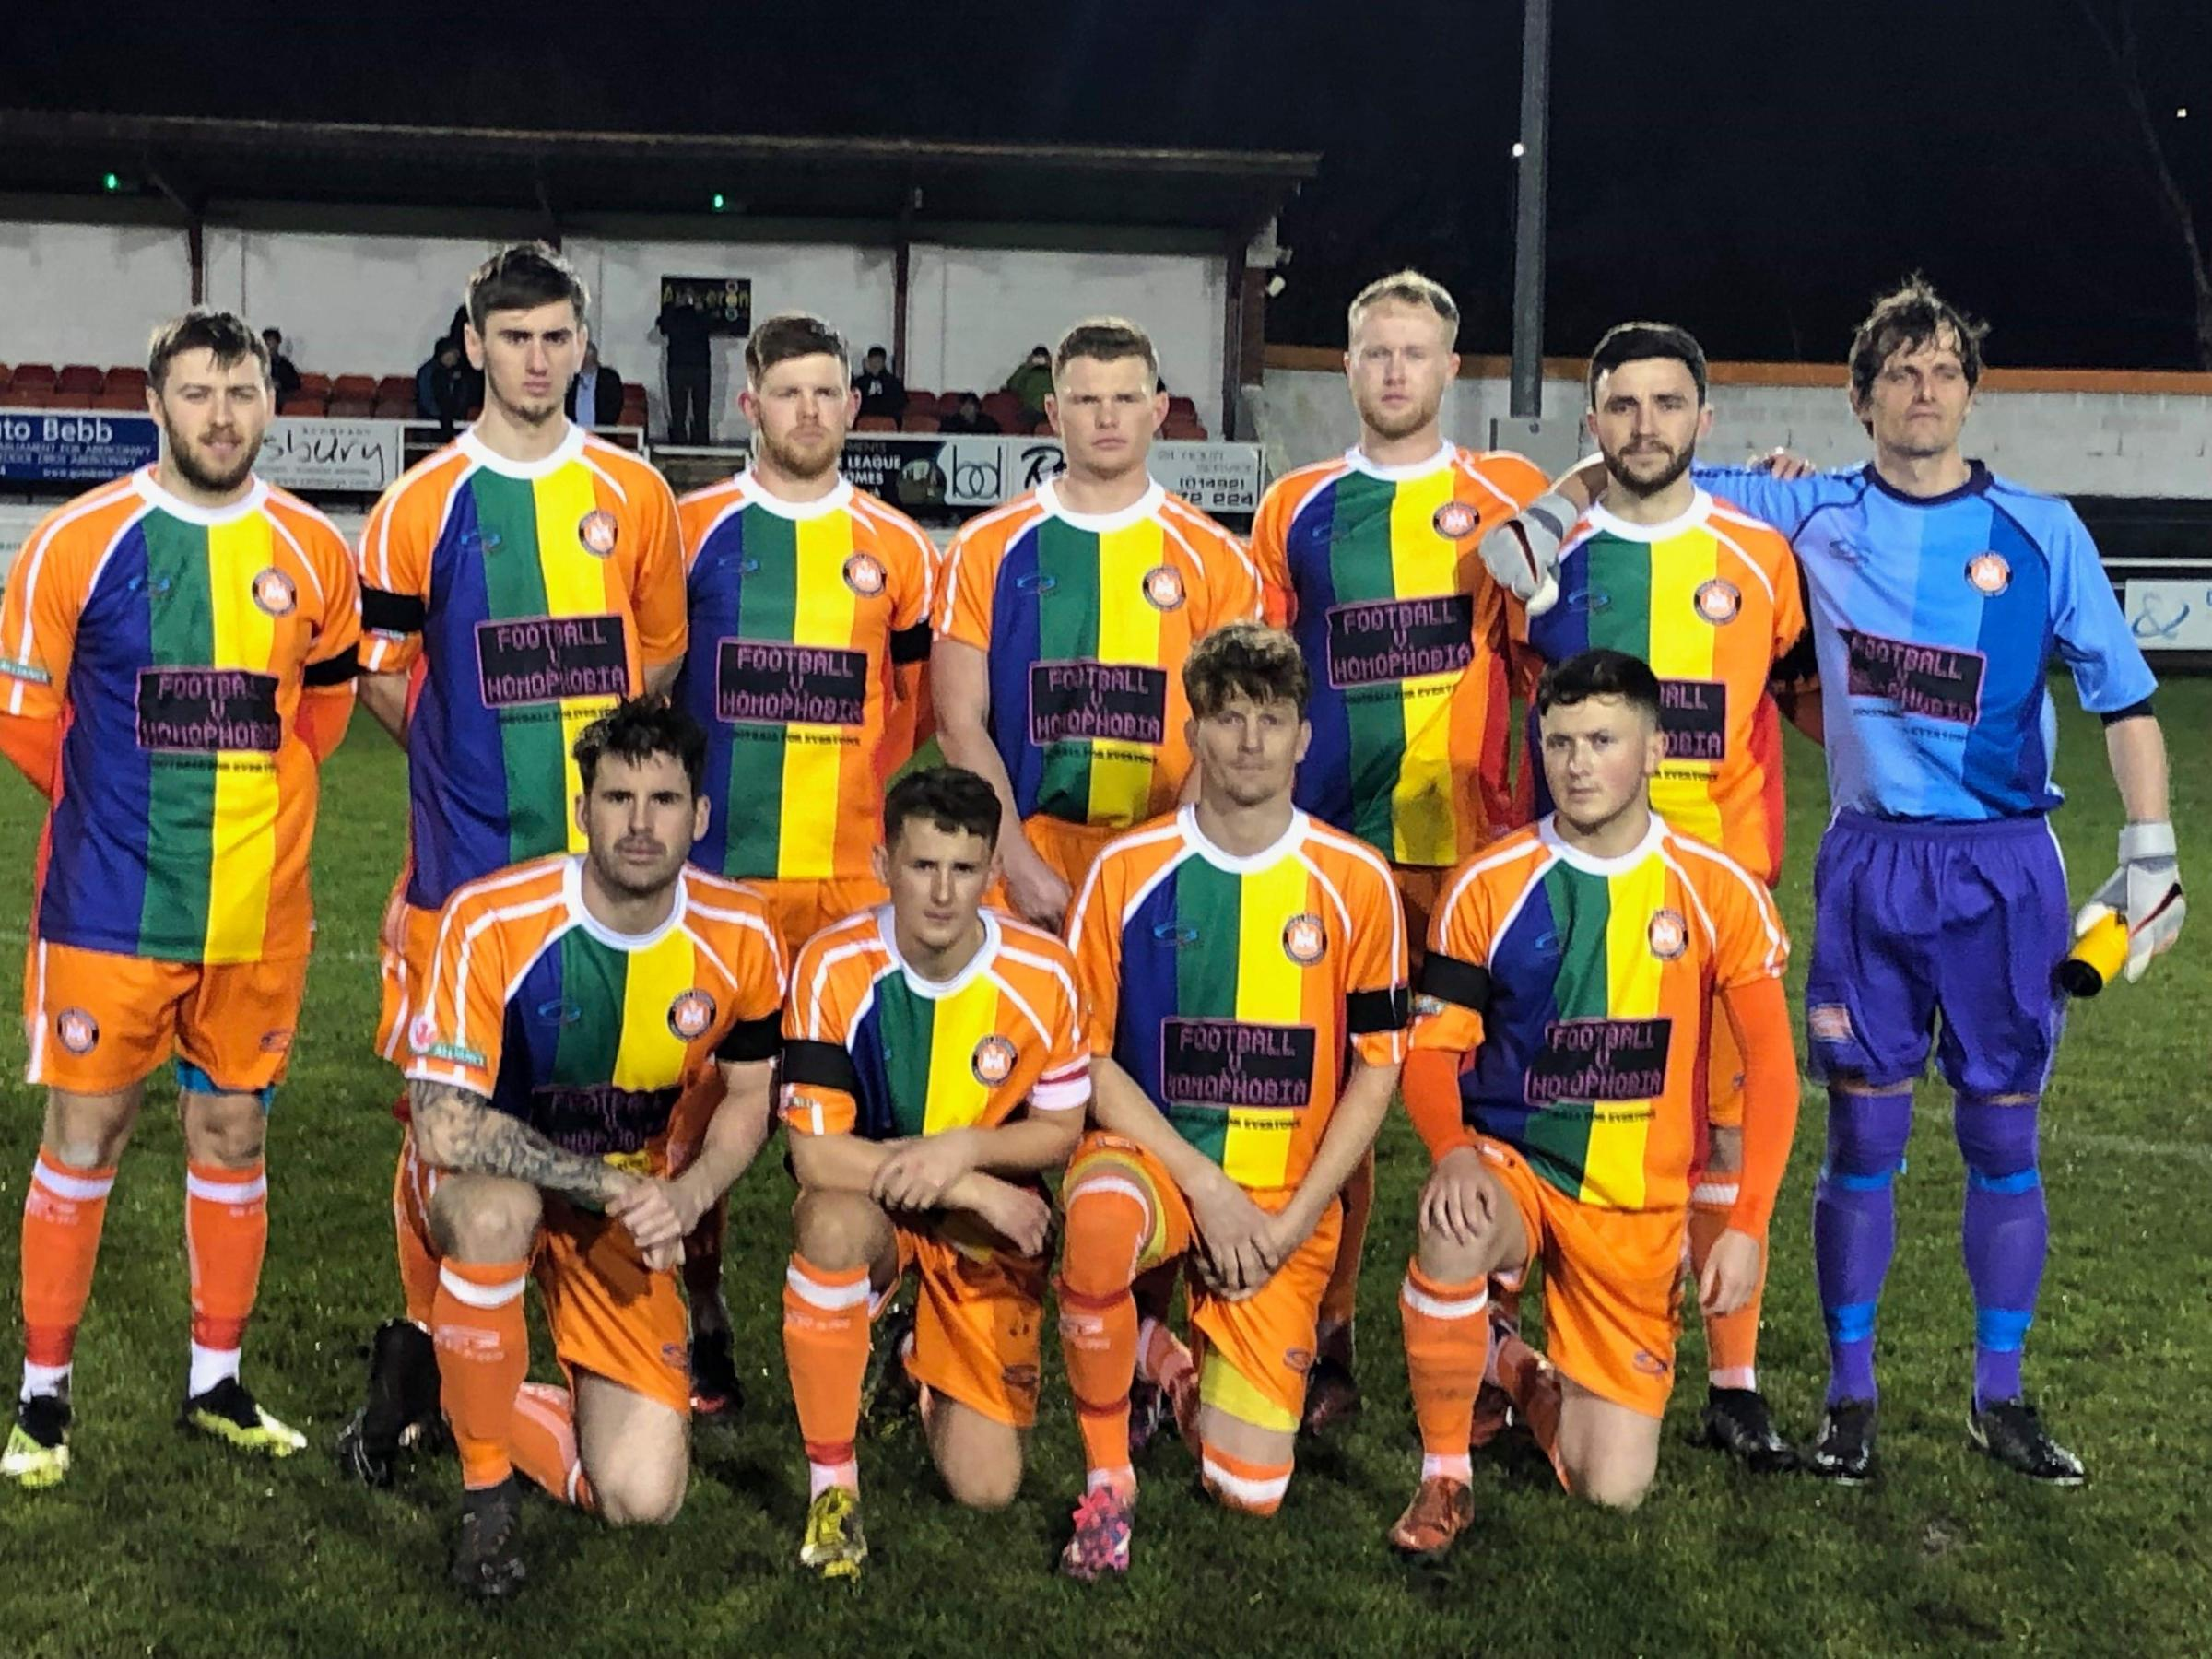 Conwy Borough line up in their Football vs Homophobia shirts before their game with Prestatyn Town